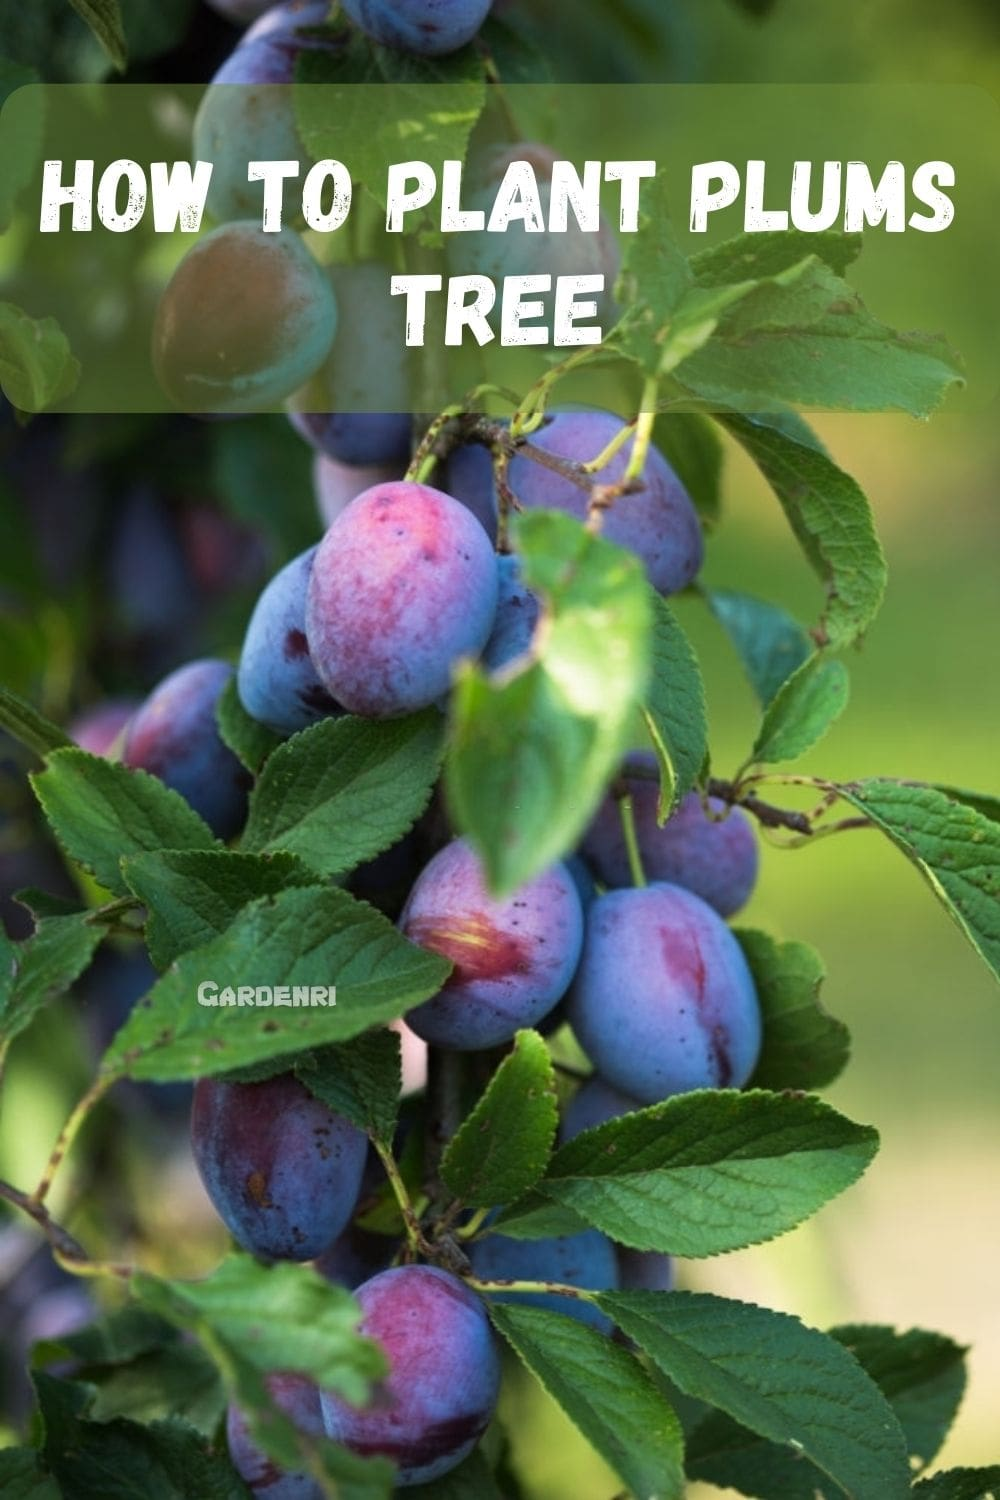 How to Plant Plums Tree Full Guide